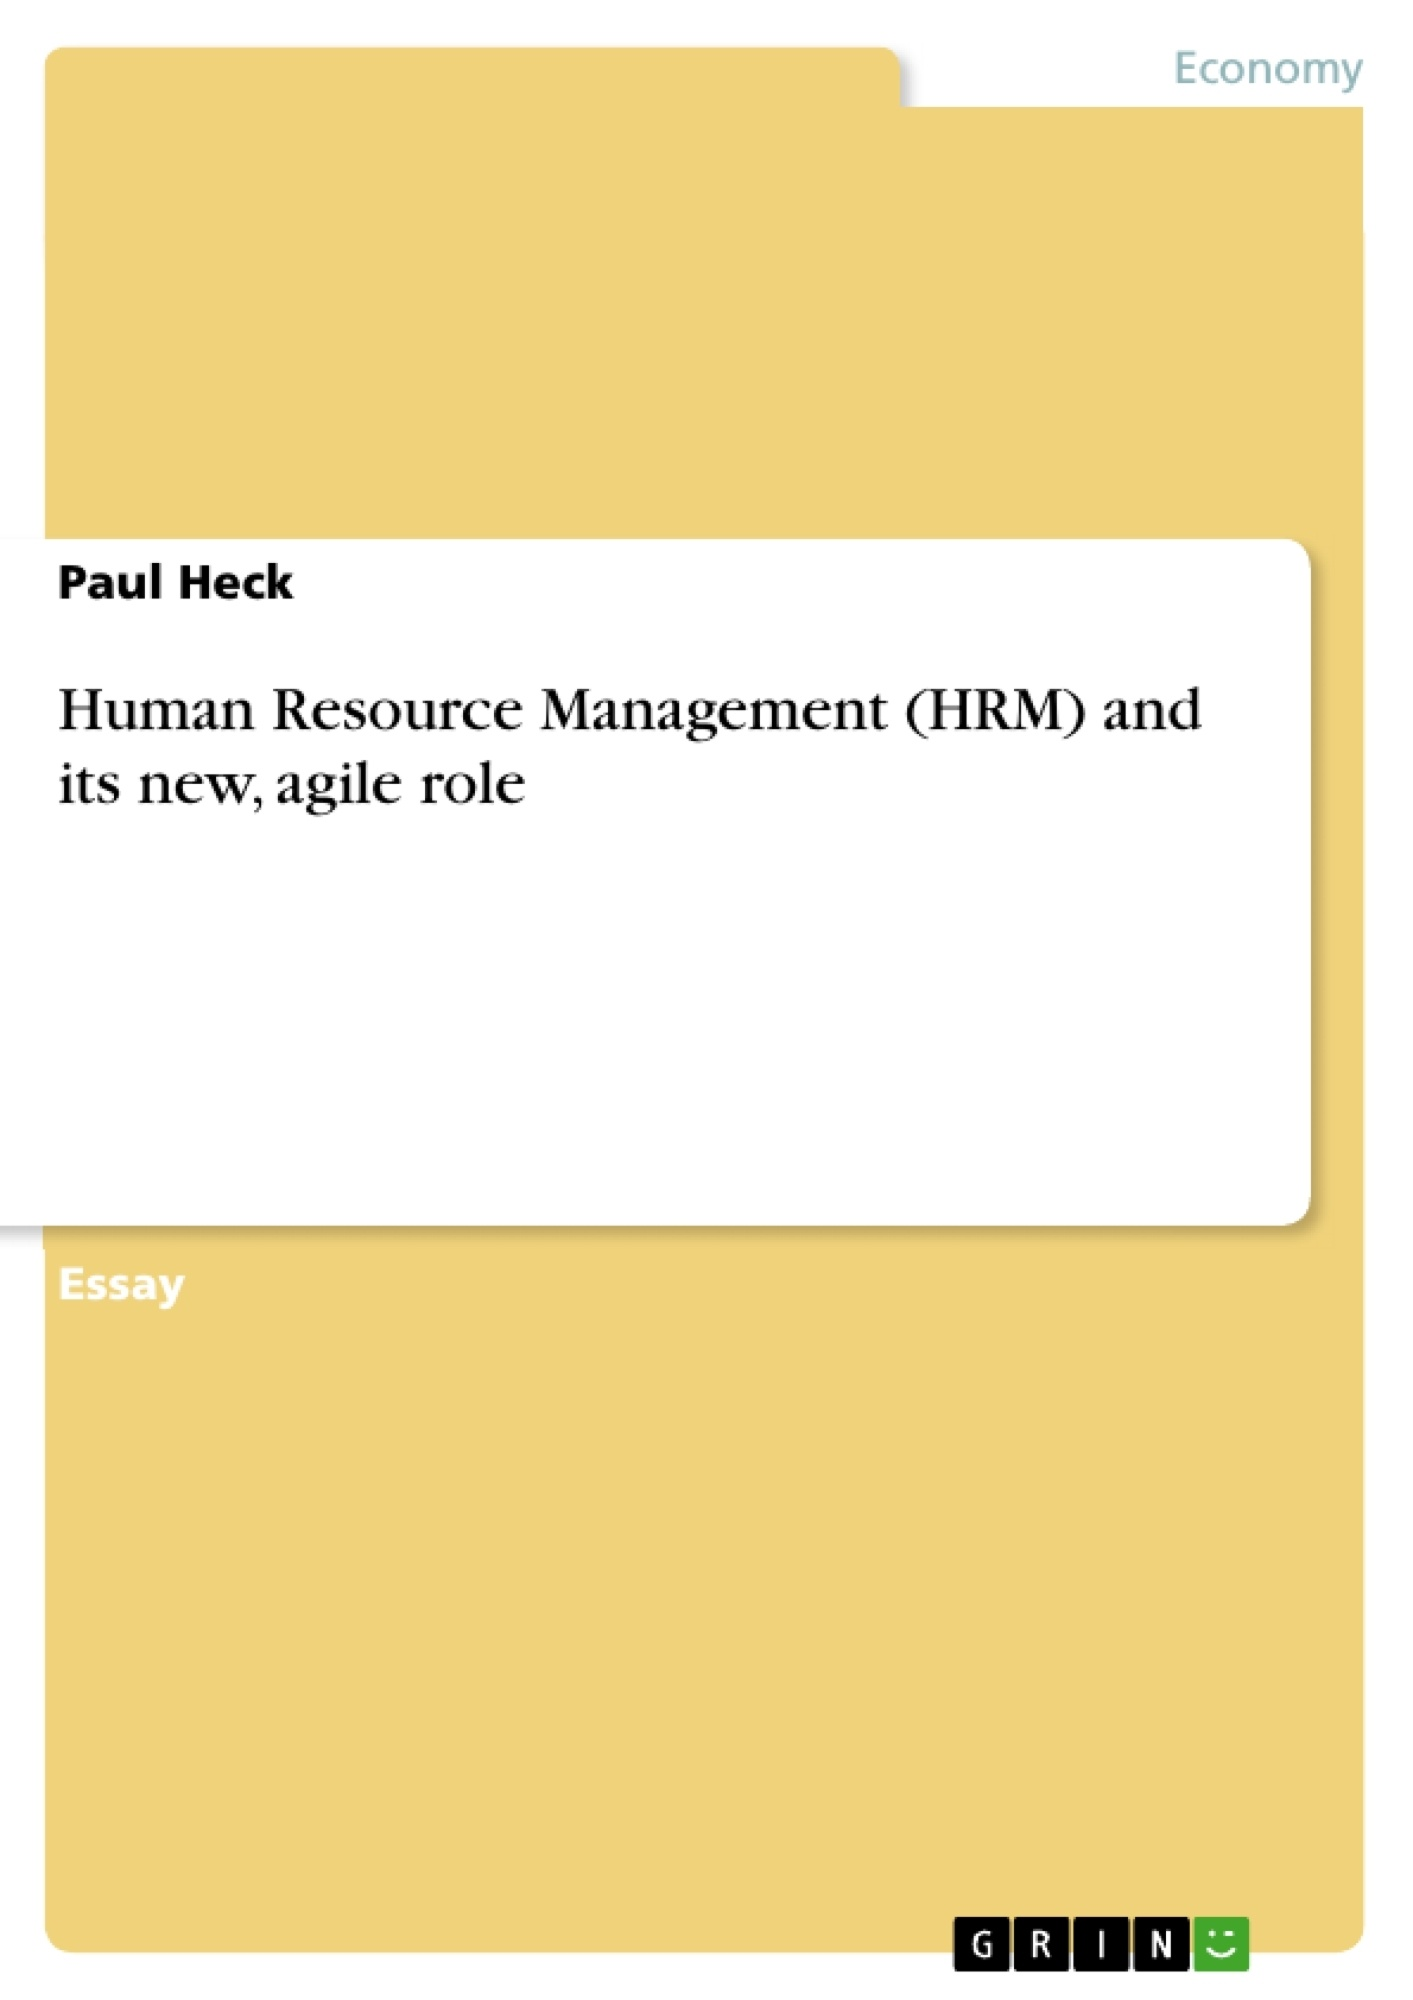 Title: Human Resource Management (HRM) and its new, agile role